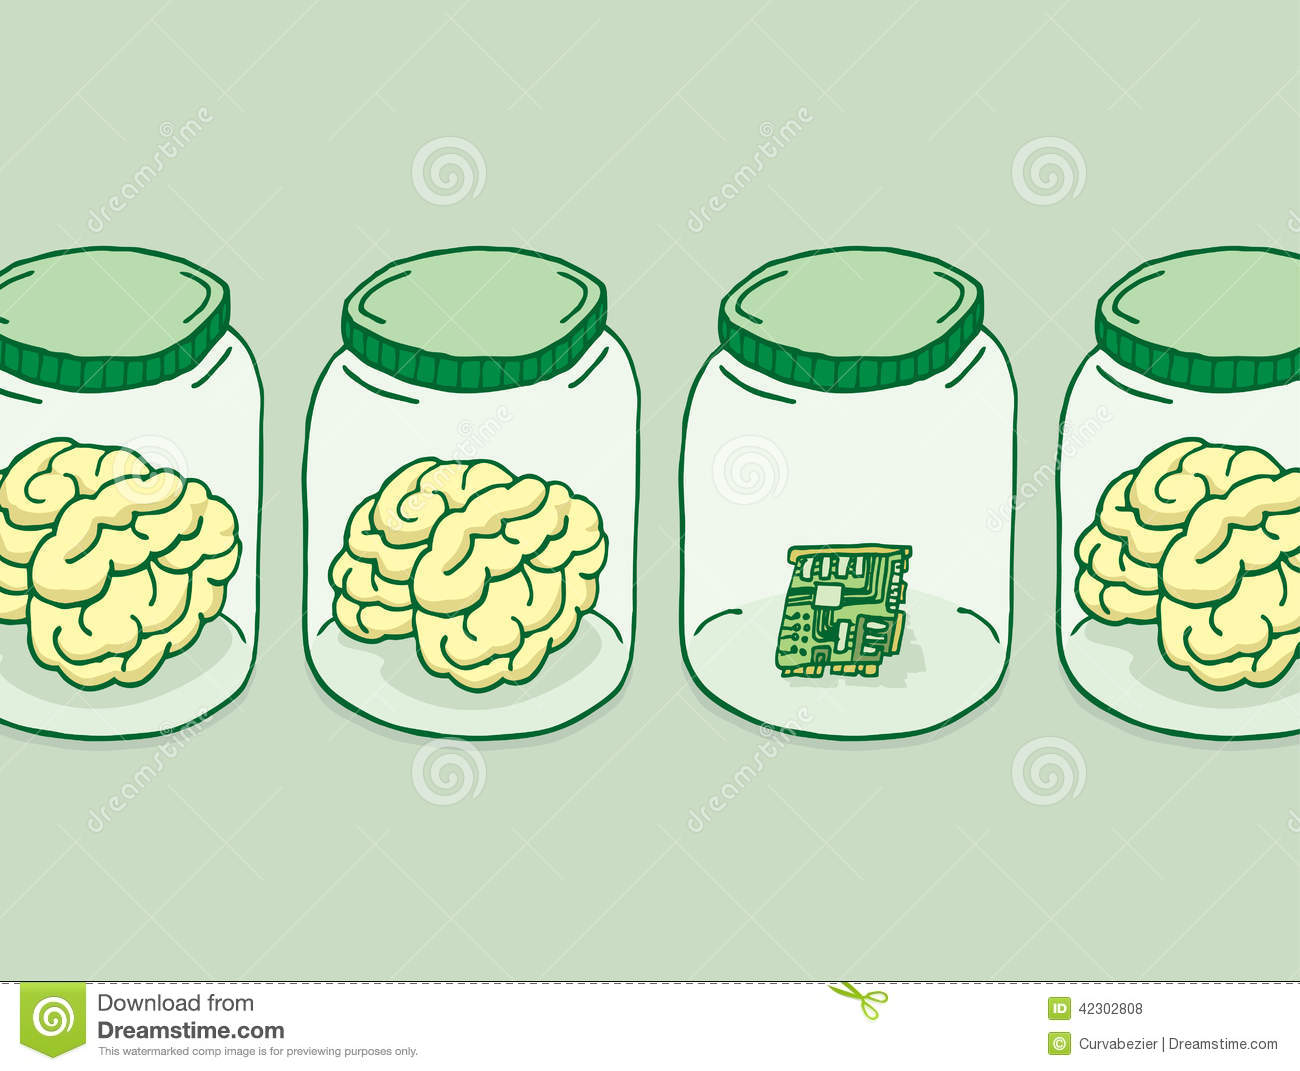 Royalty Free Stock Photo Paris Notre Dame Sketch Collection De Illustration Image39020345 as well Bridge likewise Stock Illustration Artificial Intelligence Digital Brain Cartoon Illustration Besides Brains Jars Image42302808 besides 201010546 likewise 120105 202515 249009. on tower bridge cartoon